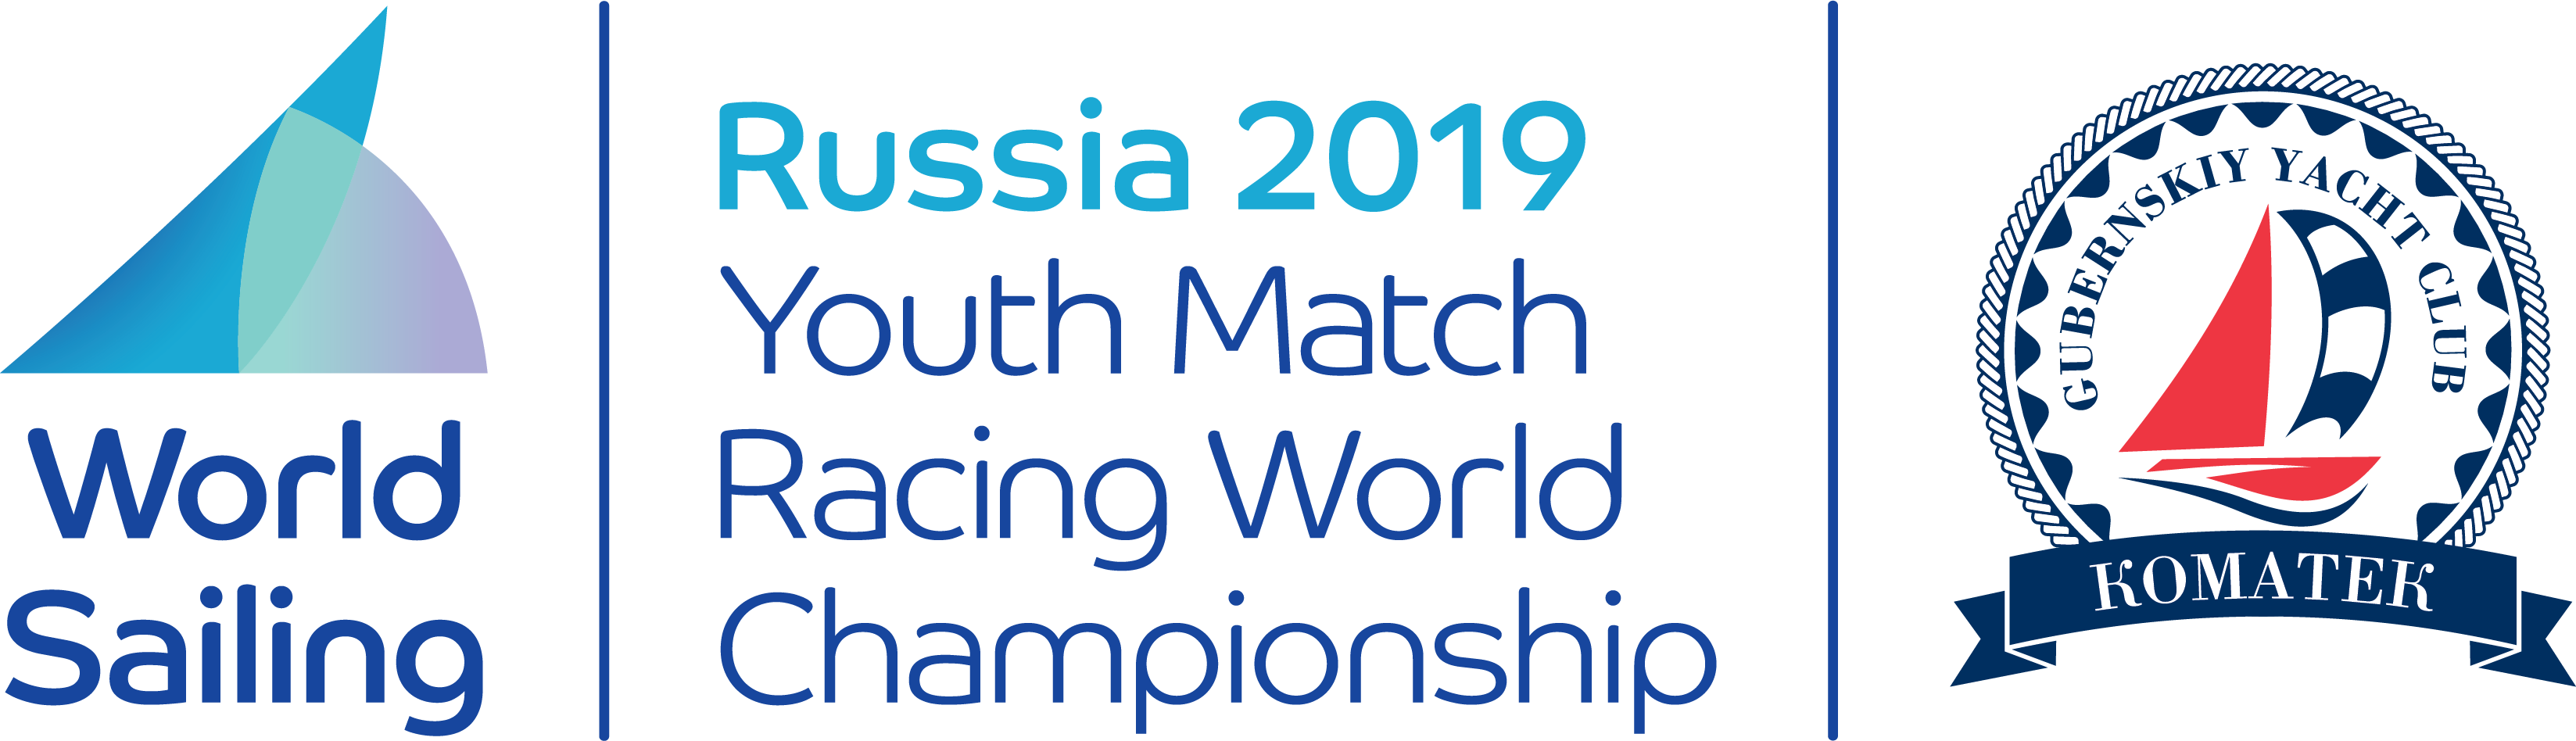 2019 Youth Match Racing World Championship logo